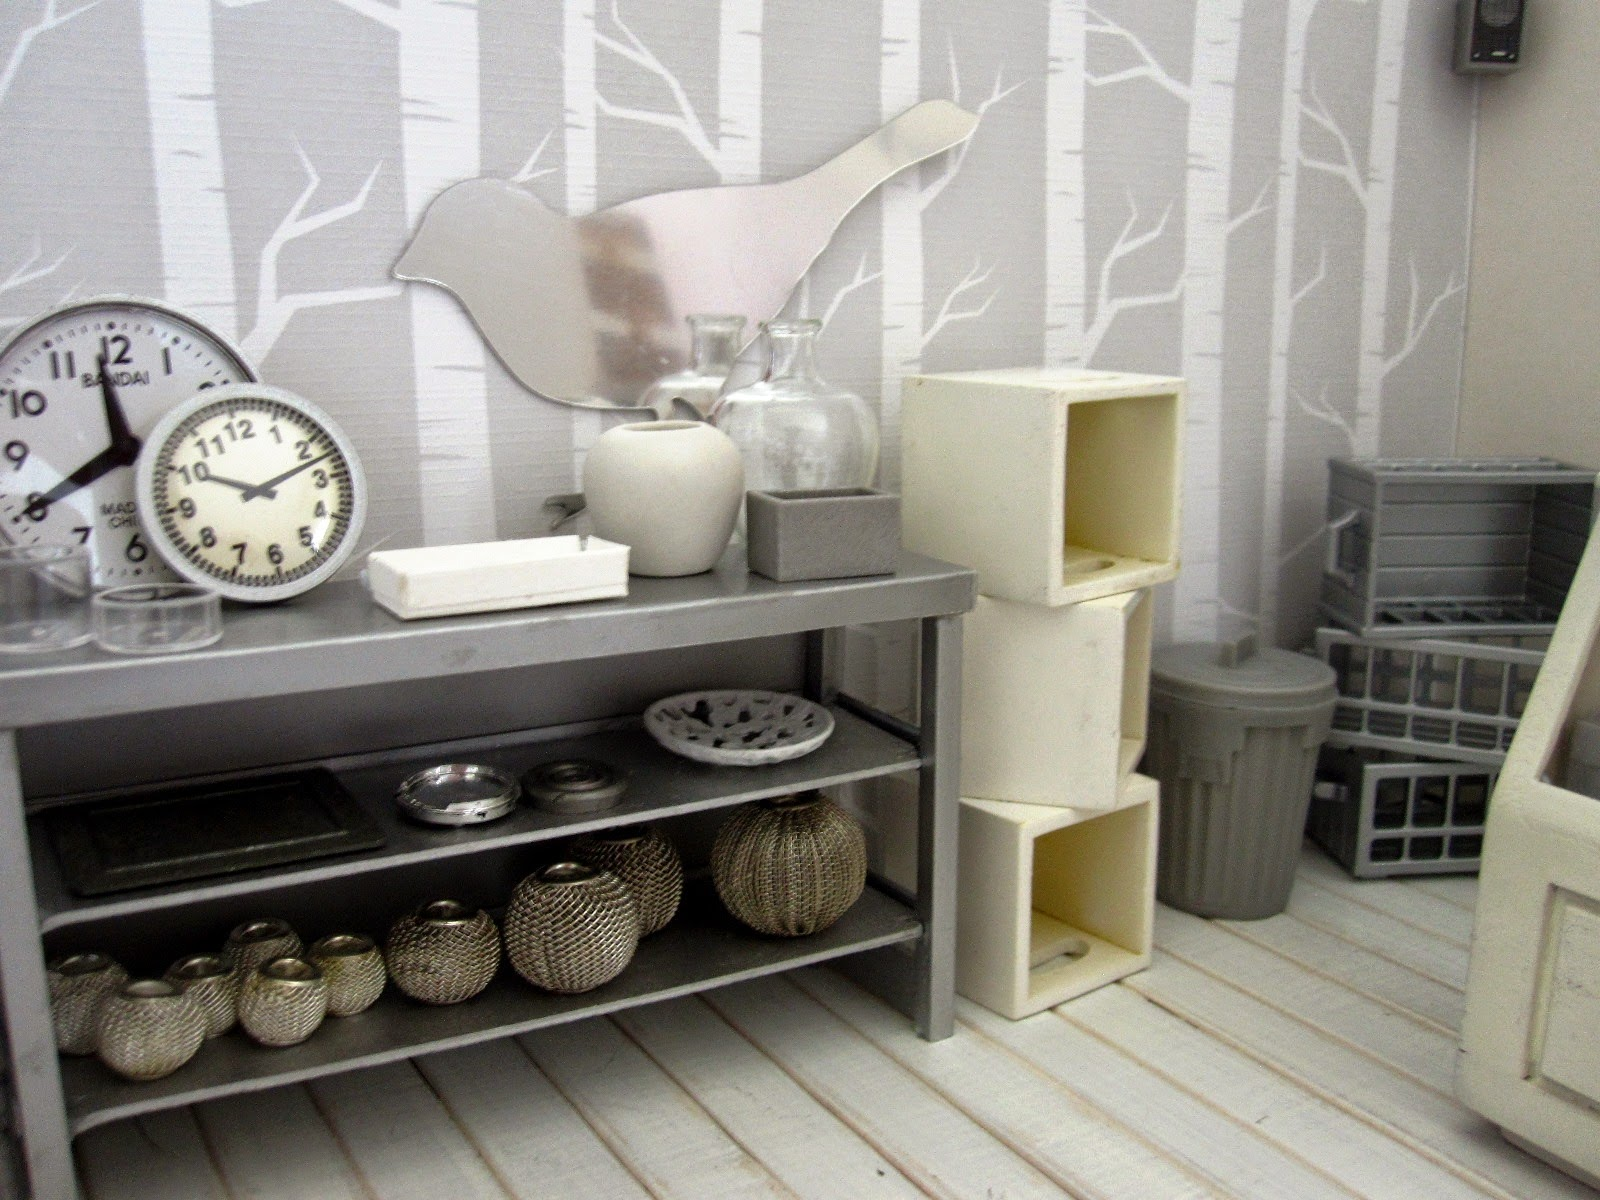 View of a modern dolls' house miniature homeware shop in grey and white. On display is  a grey metal shelving unit with various grey-coloured decor pieces. To the right is a pile of white storage boxes, a grey trash can and a pile of grey storage baskets.